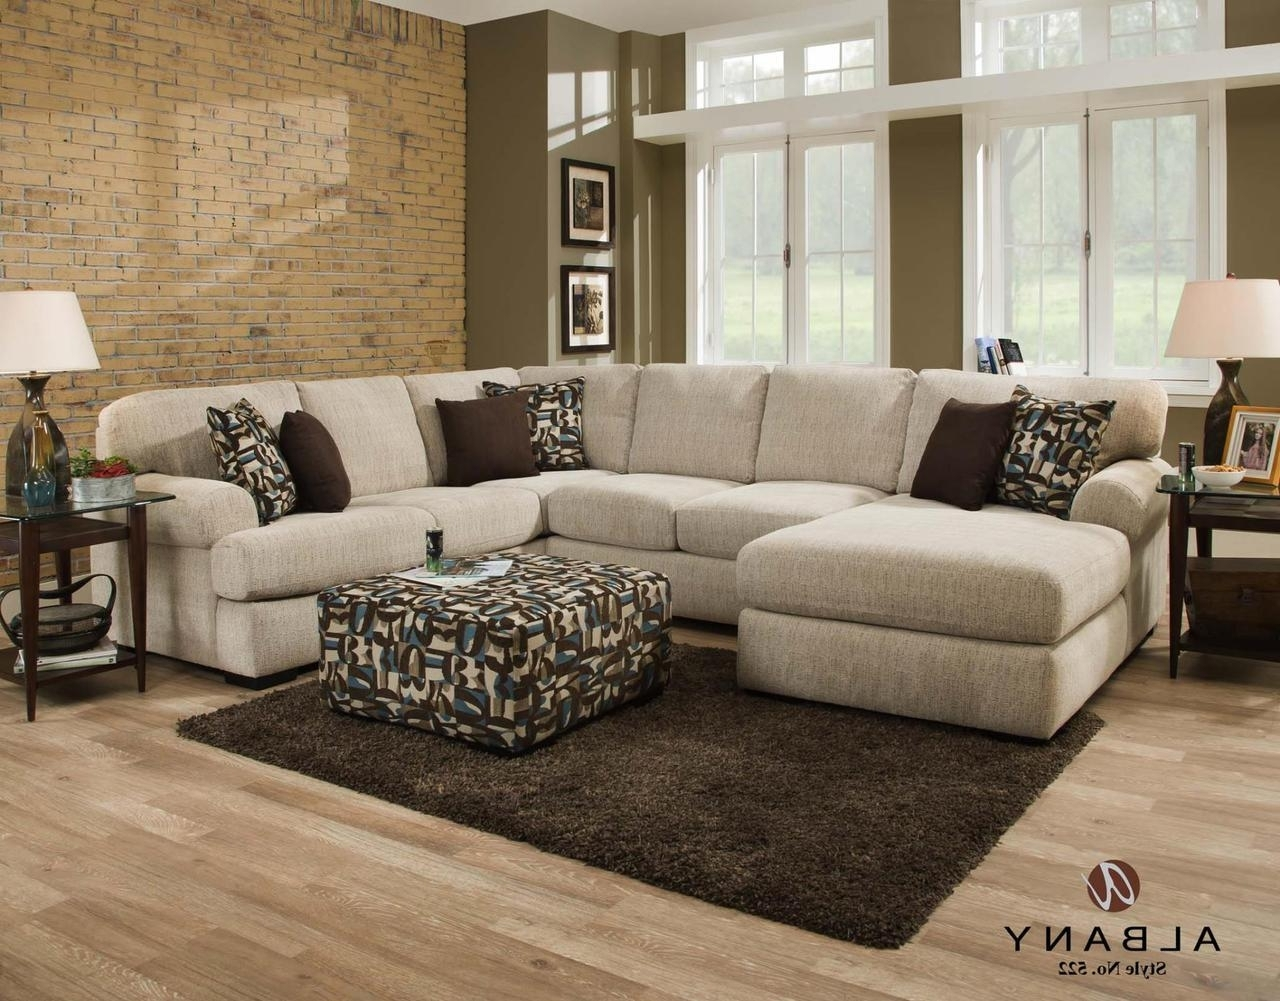 Widely Used Camel Sectional Sofas Pertaining To Albany Sectional Sofa – Hotelsbacau (View 15 of 15)